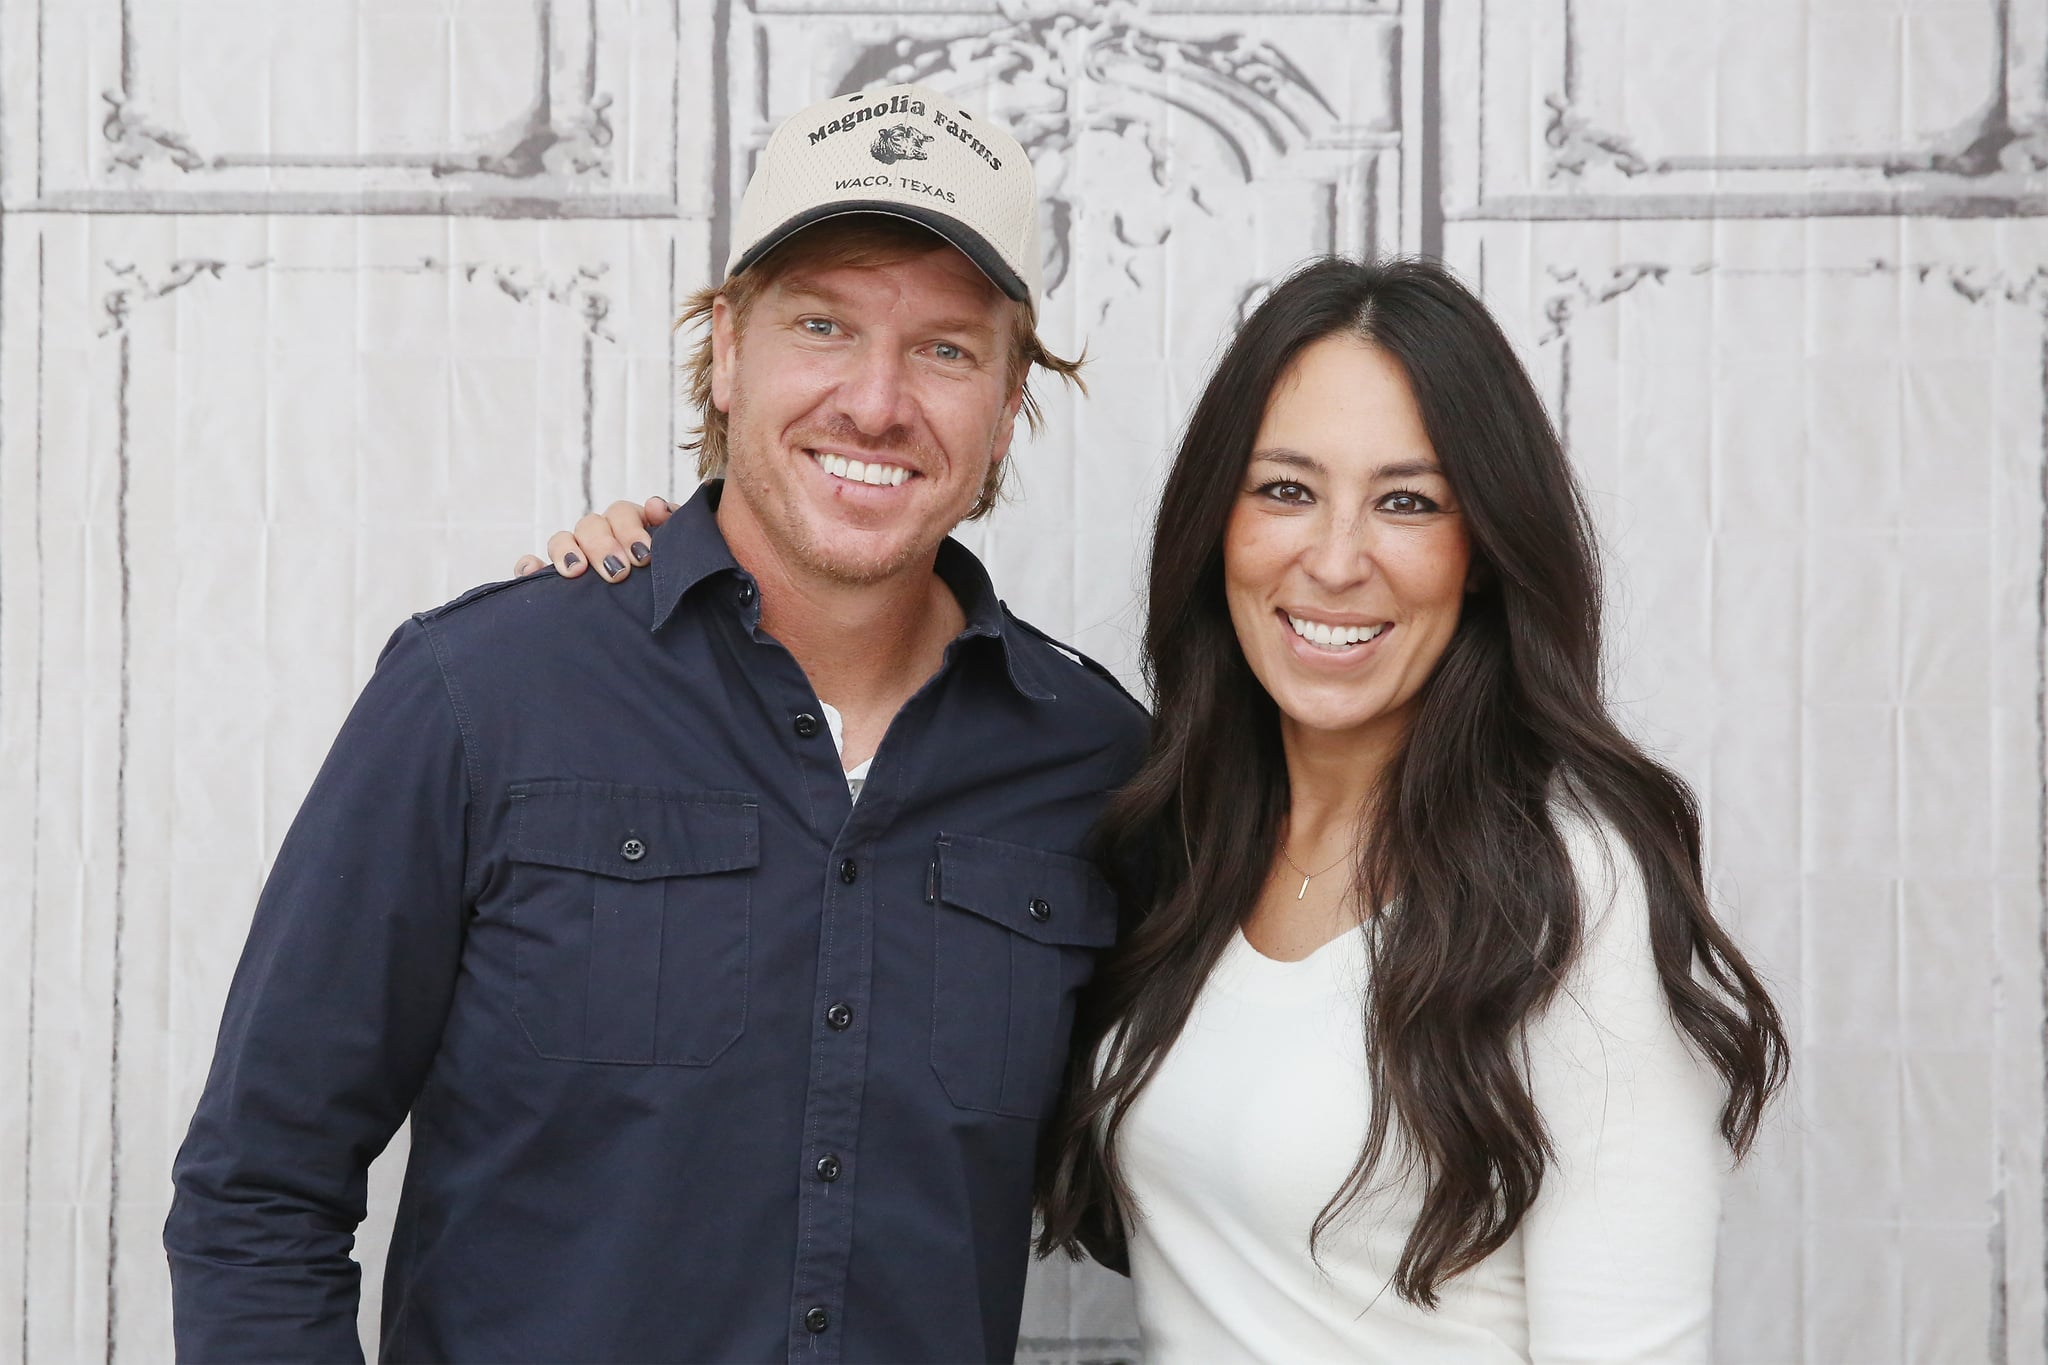 'Fixer Upper' to end after Season 5, says Chip and Joanna